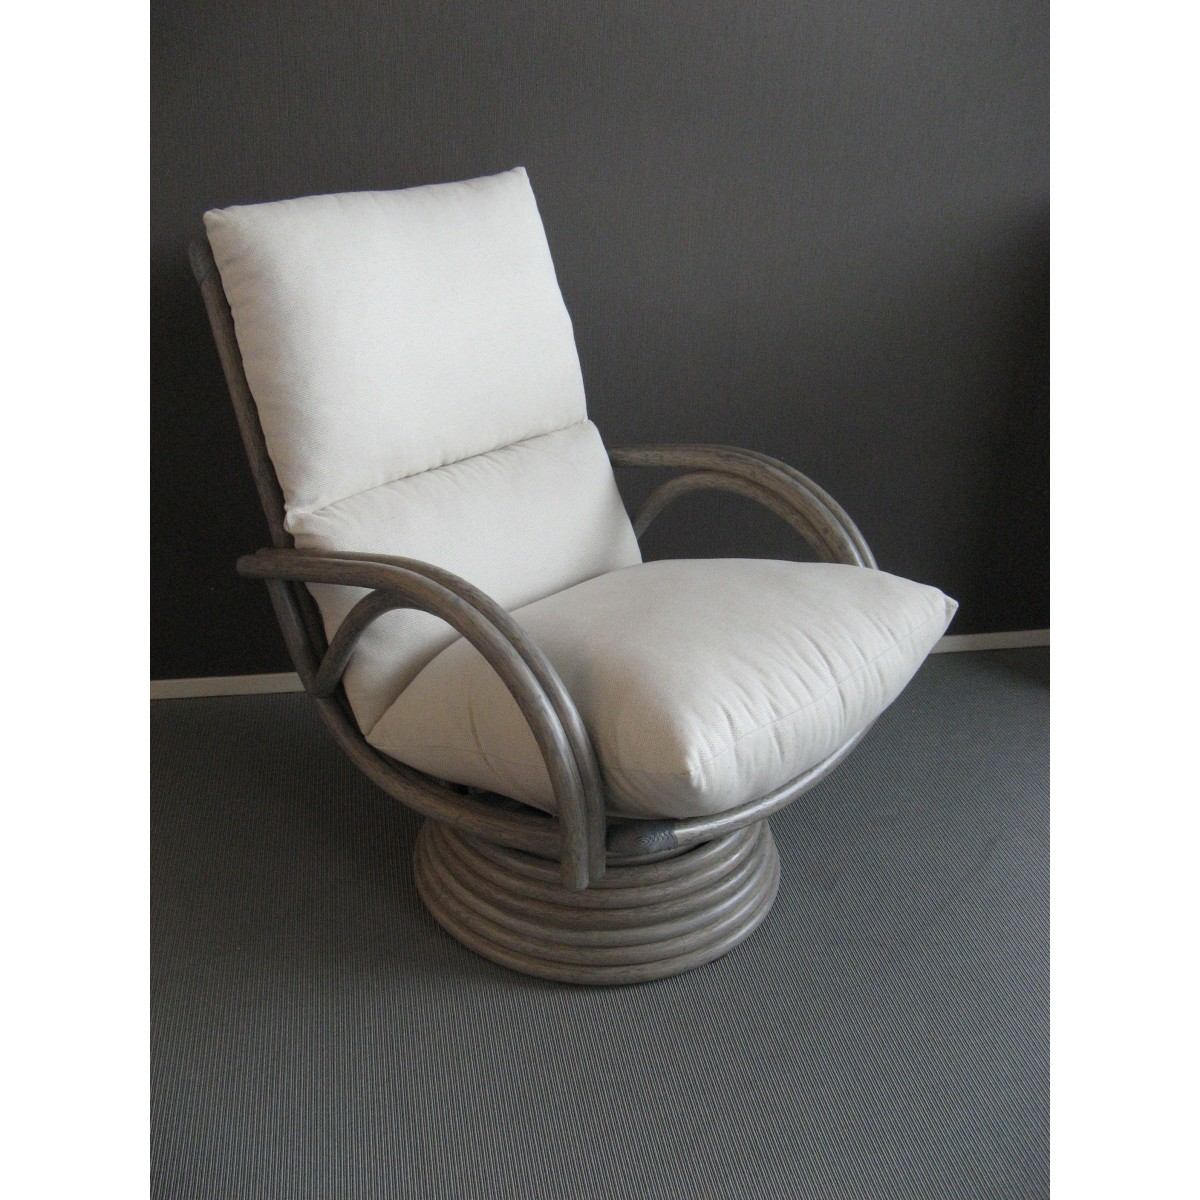 Salon en rotin gris comprenant un canap 3 places en rotin for Salon canape et 2 fauteuils